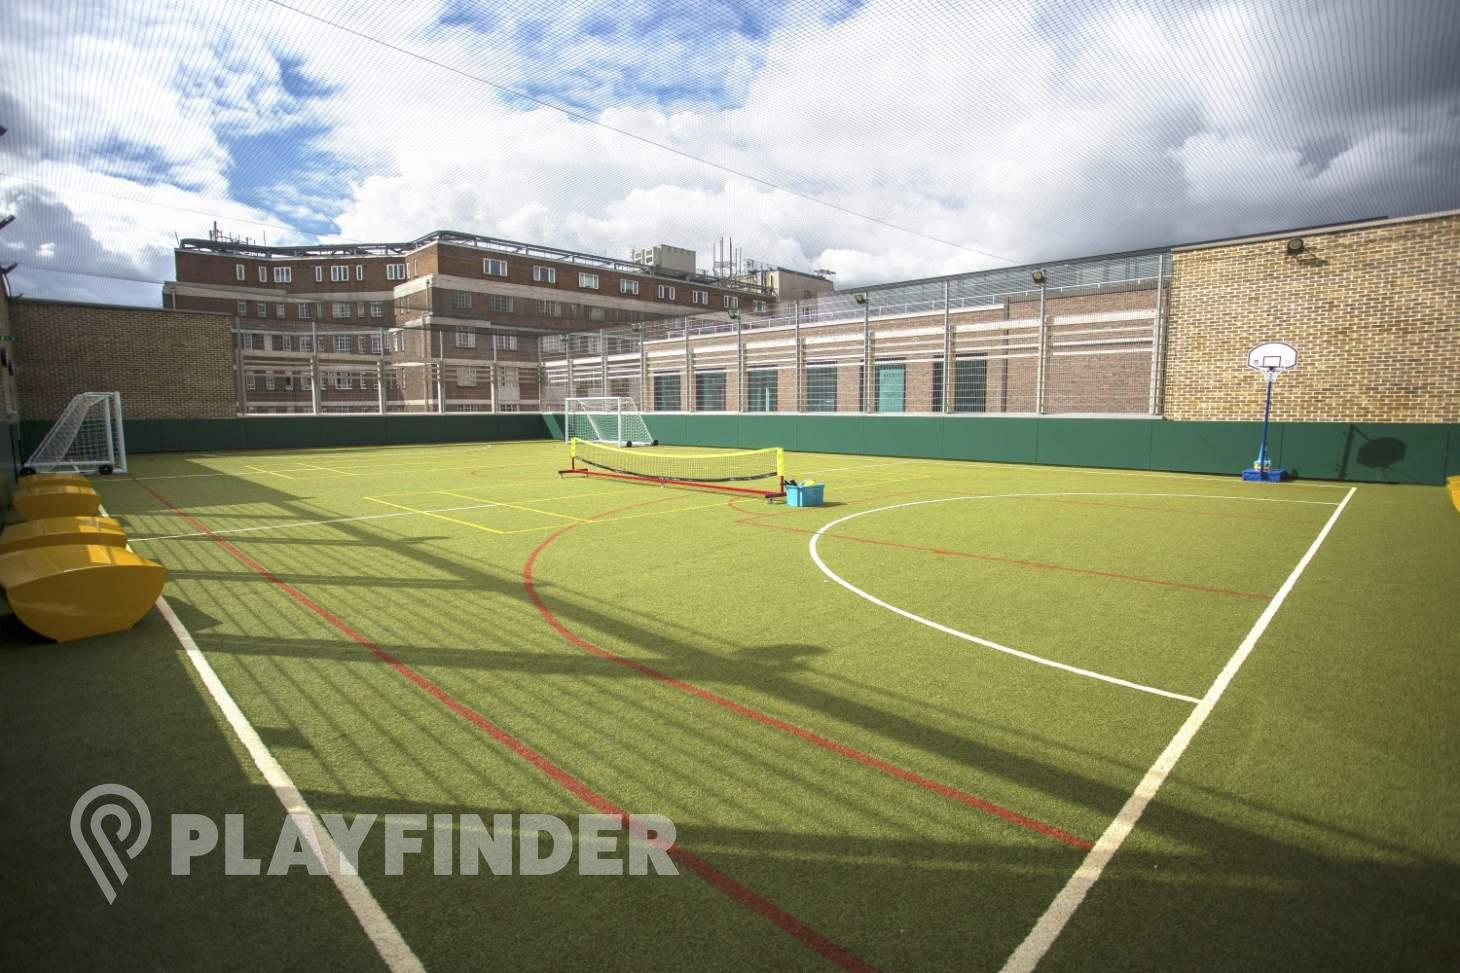 Sloane Square Sports Pitch, Marlborough 5 a side | Astroturf football pitch